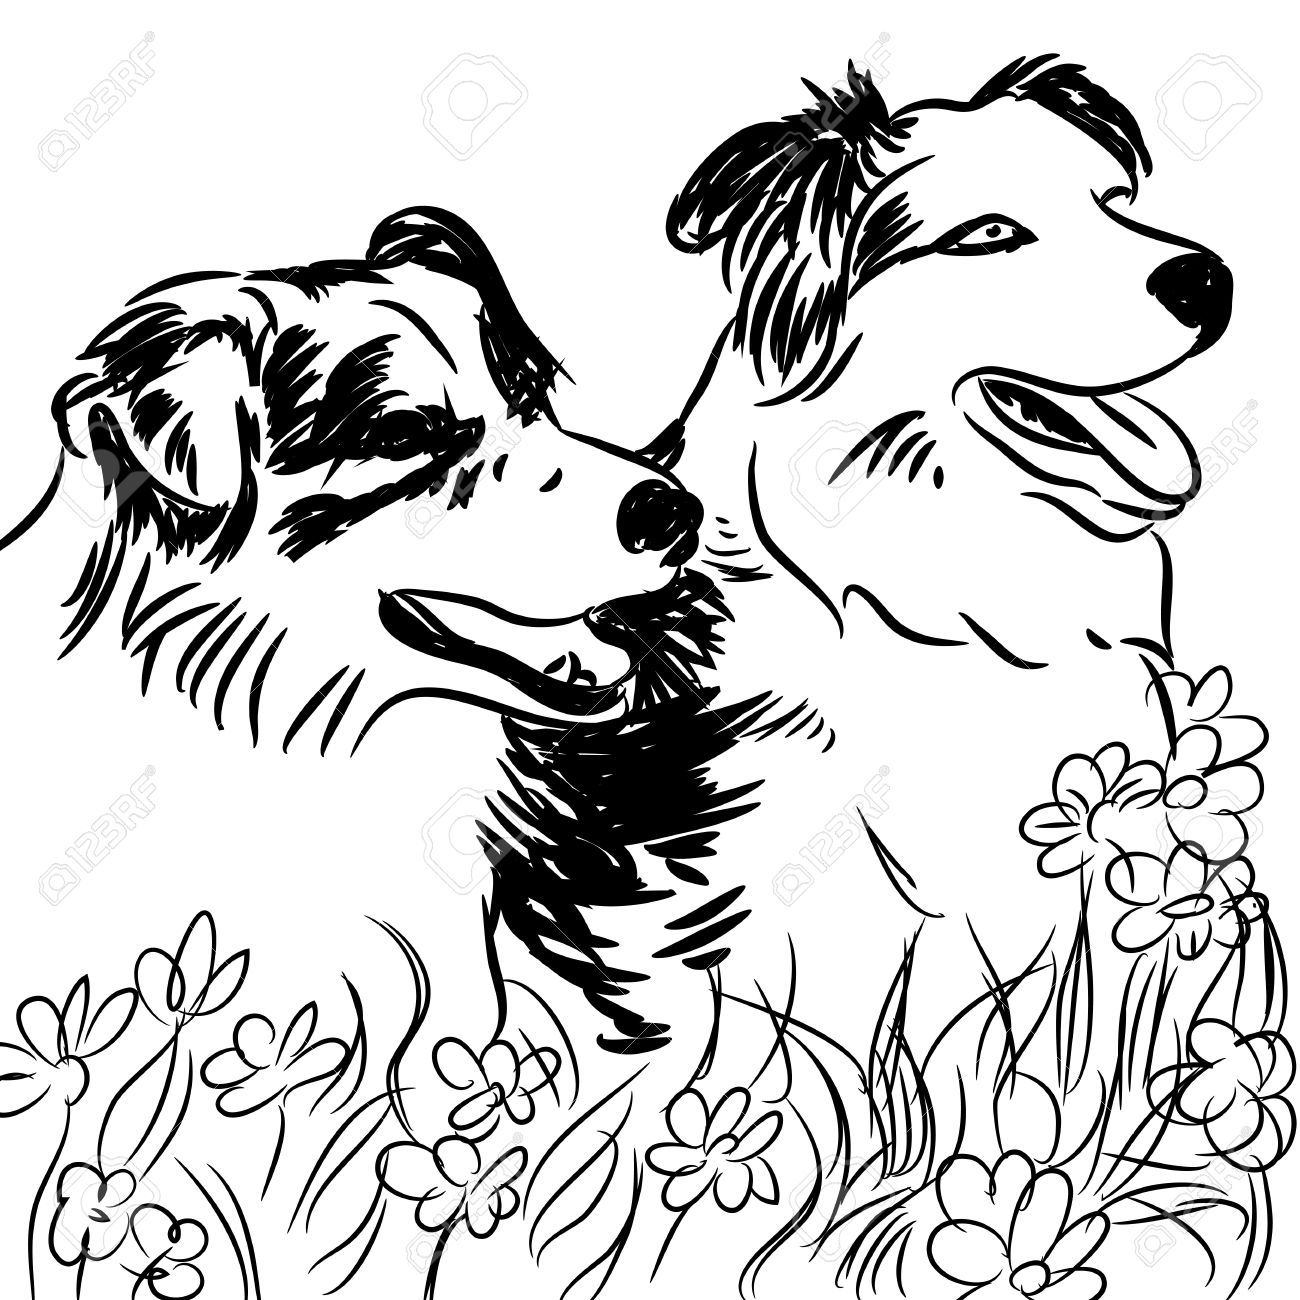 Pin By Theresa Wolf On Border Collies Dog Clip Art Dog Flower Border Collie Dog